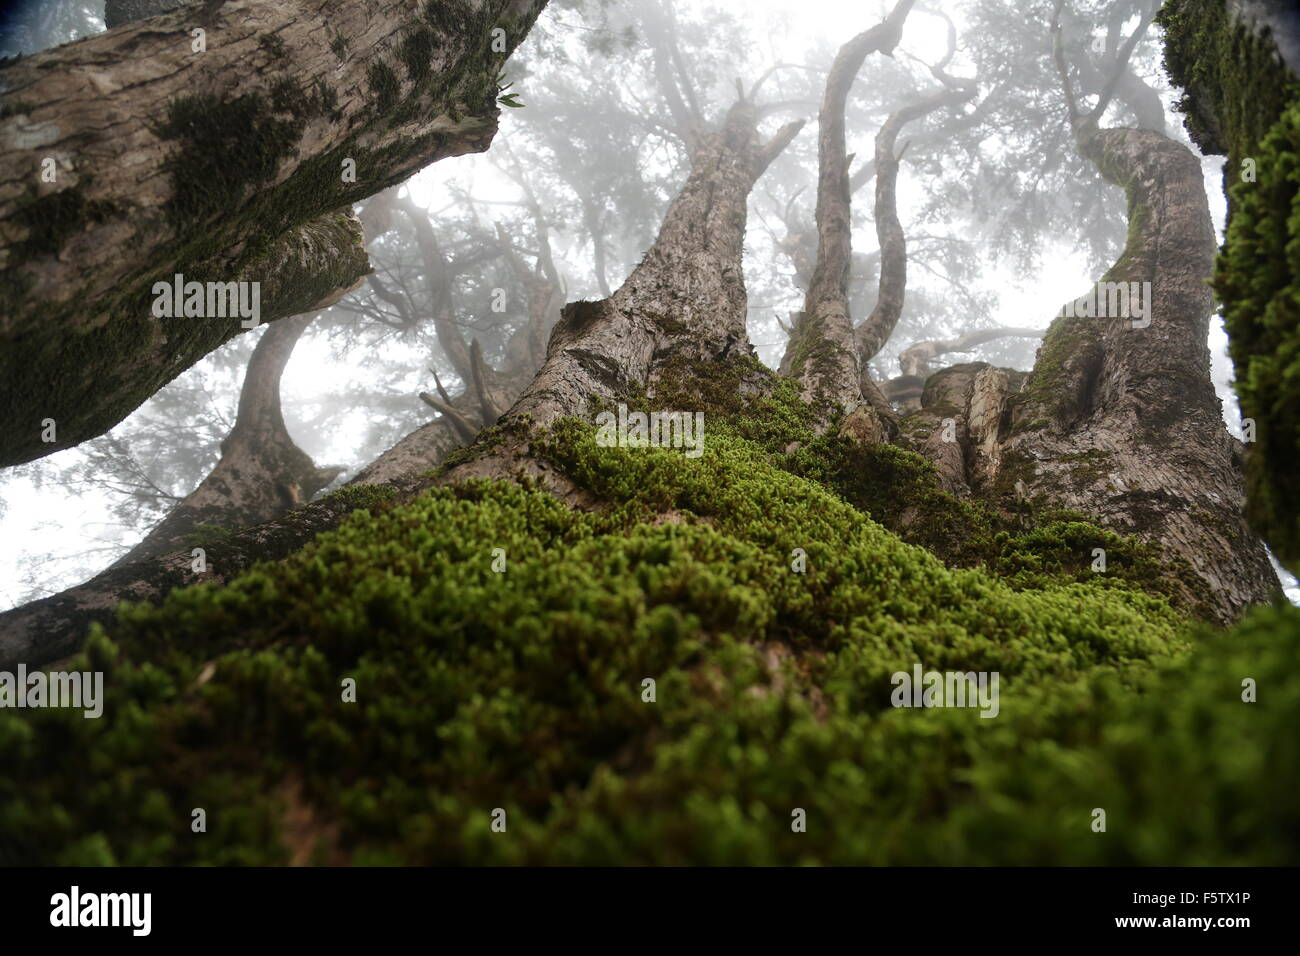 Large tee whose base is covered in green moss and its branches disappear into the mist above, at a botanical garden - Stock Image